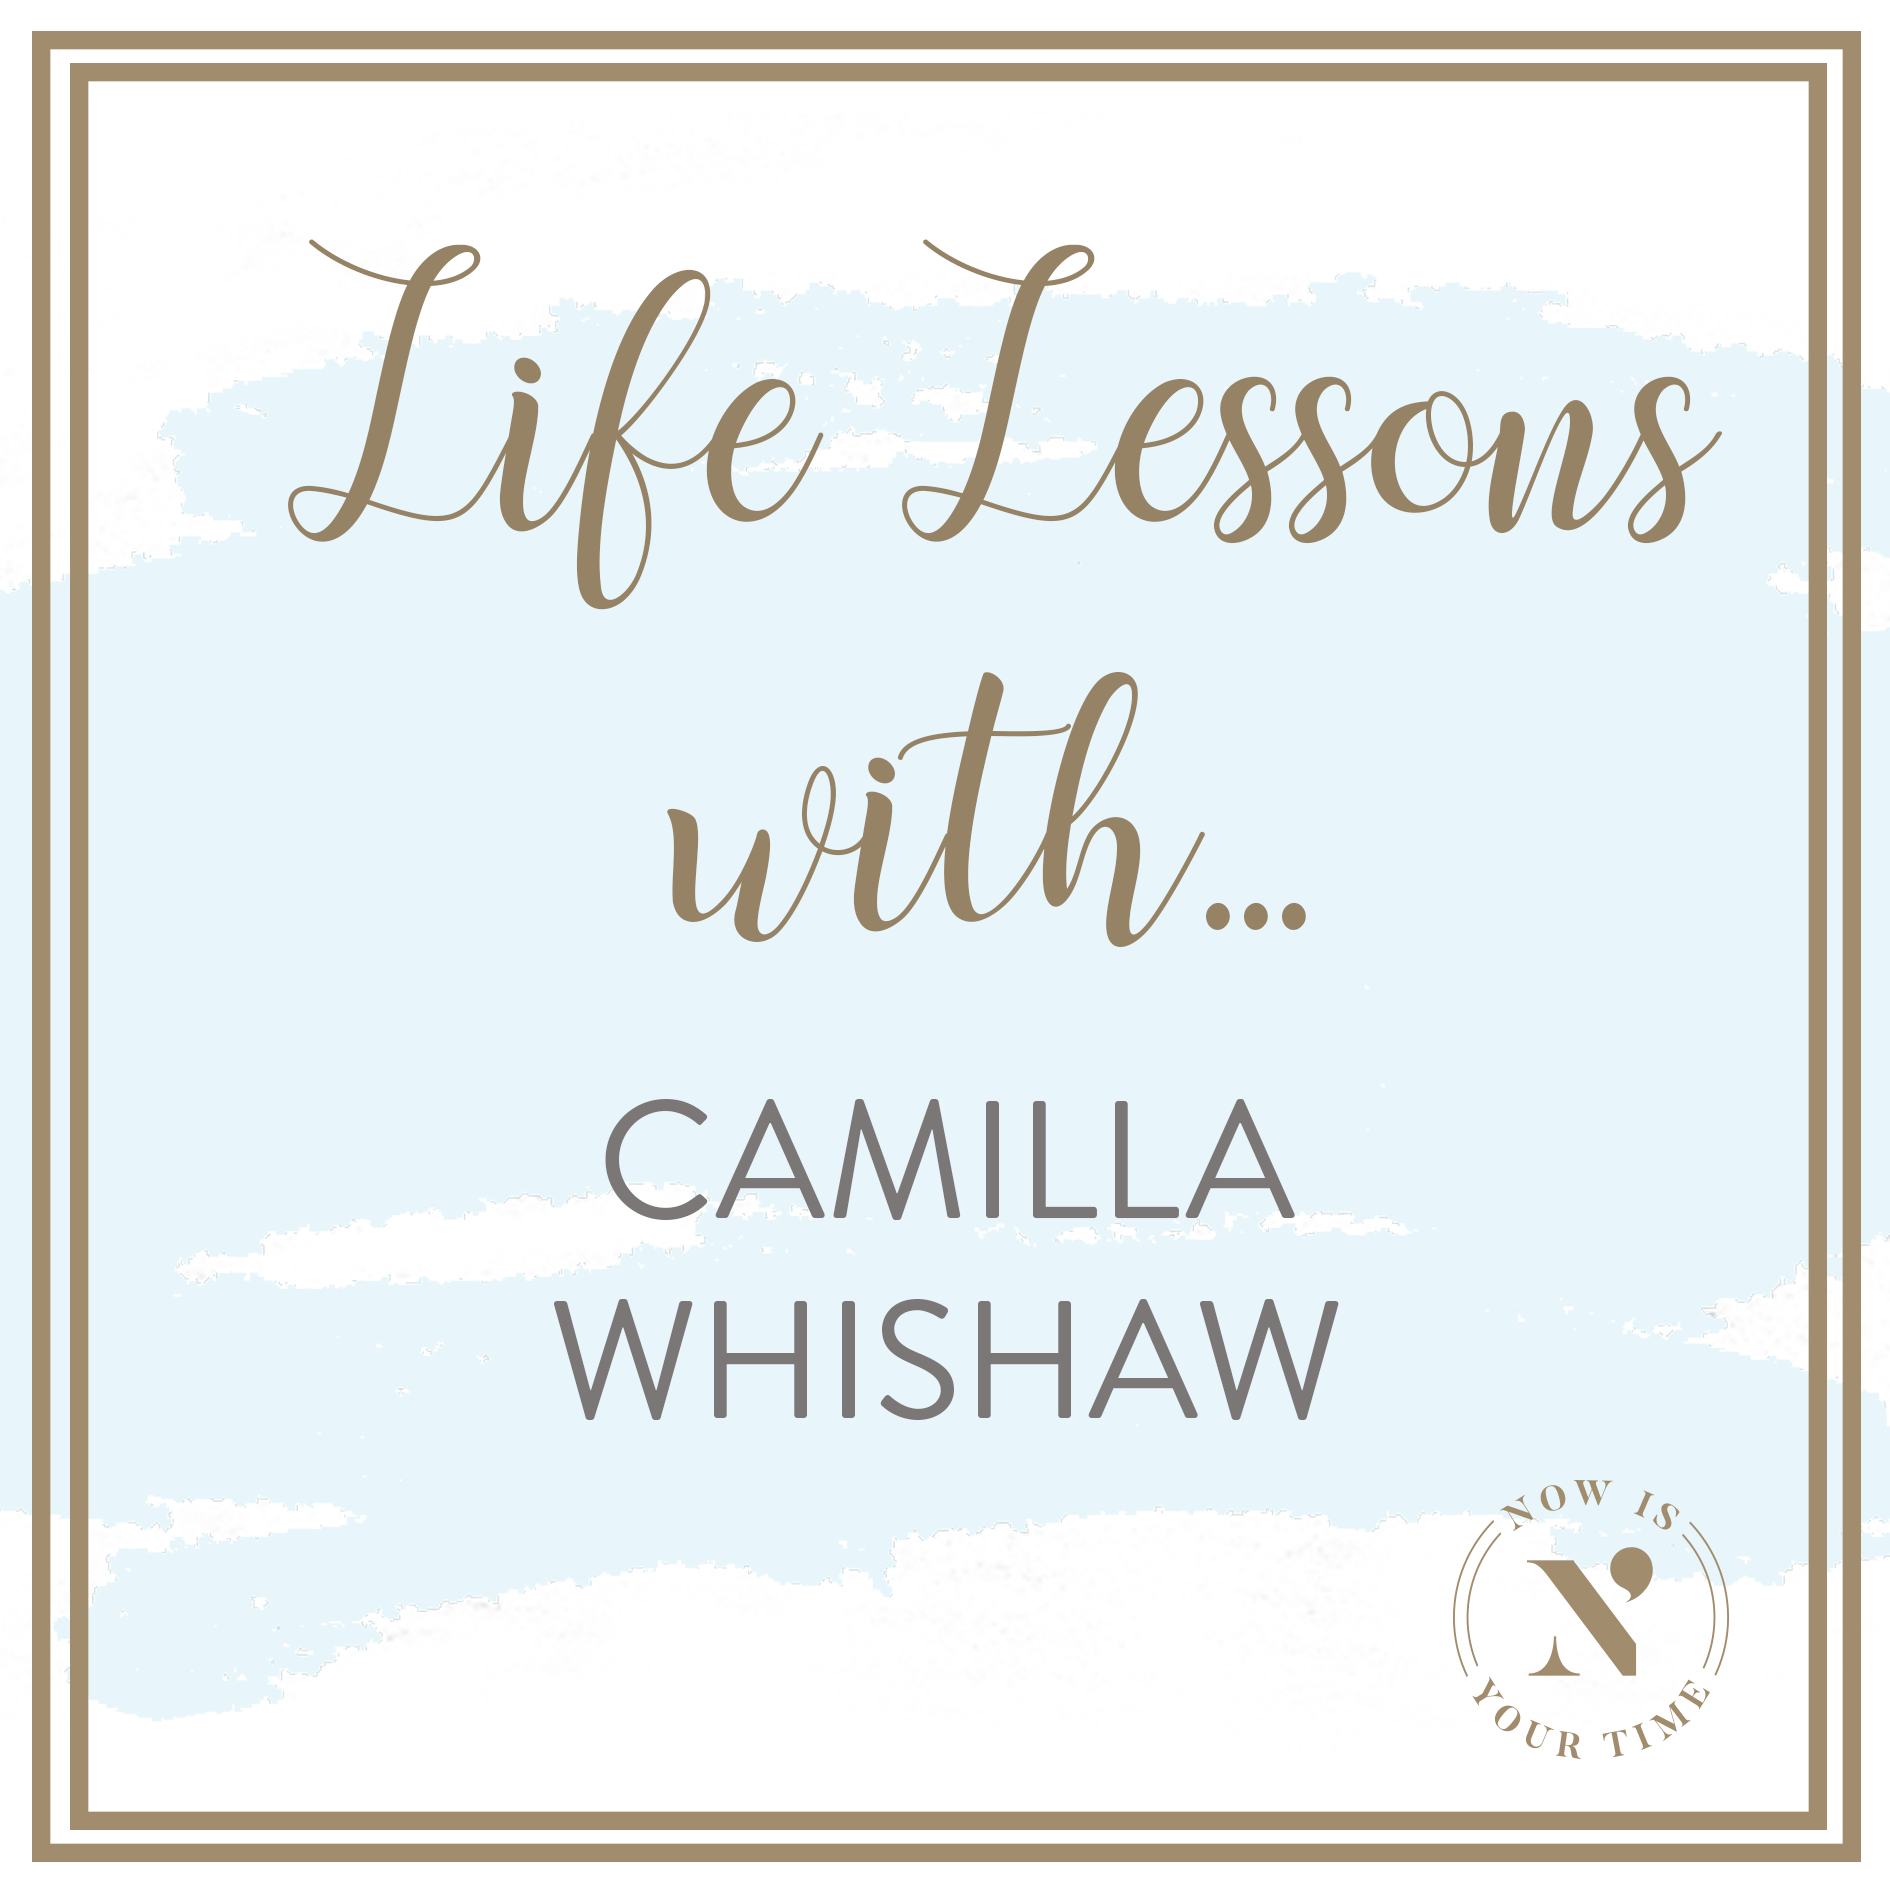 Life Lessons with podcast artwork - Camilla Whishaw.png